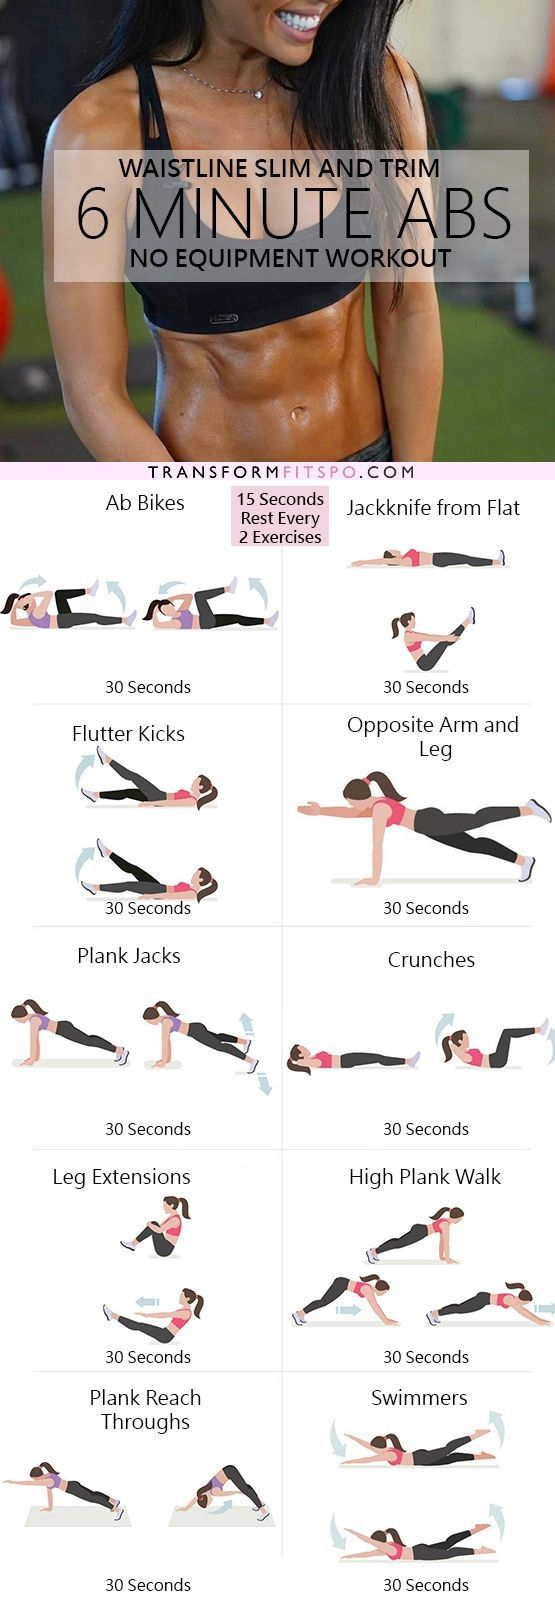 Get-Slim-and-Trim-with-this-6-Minute-Abs-Workout.jpg 555×1,611 pixels